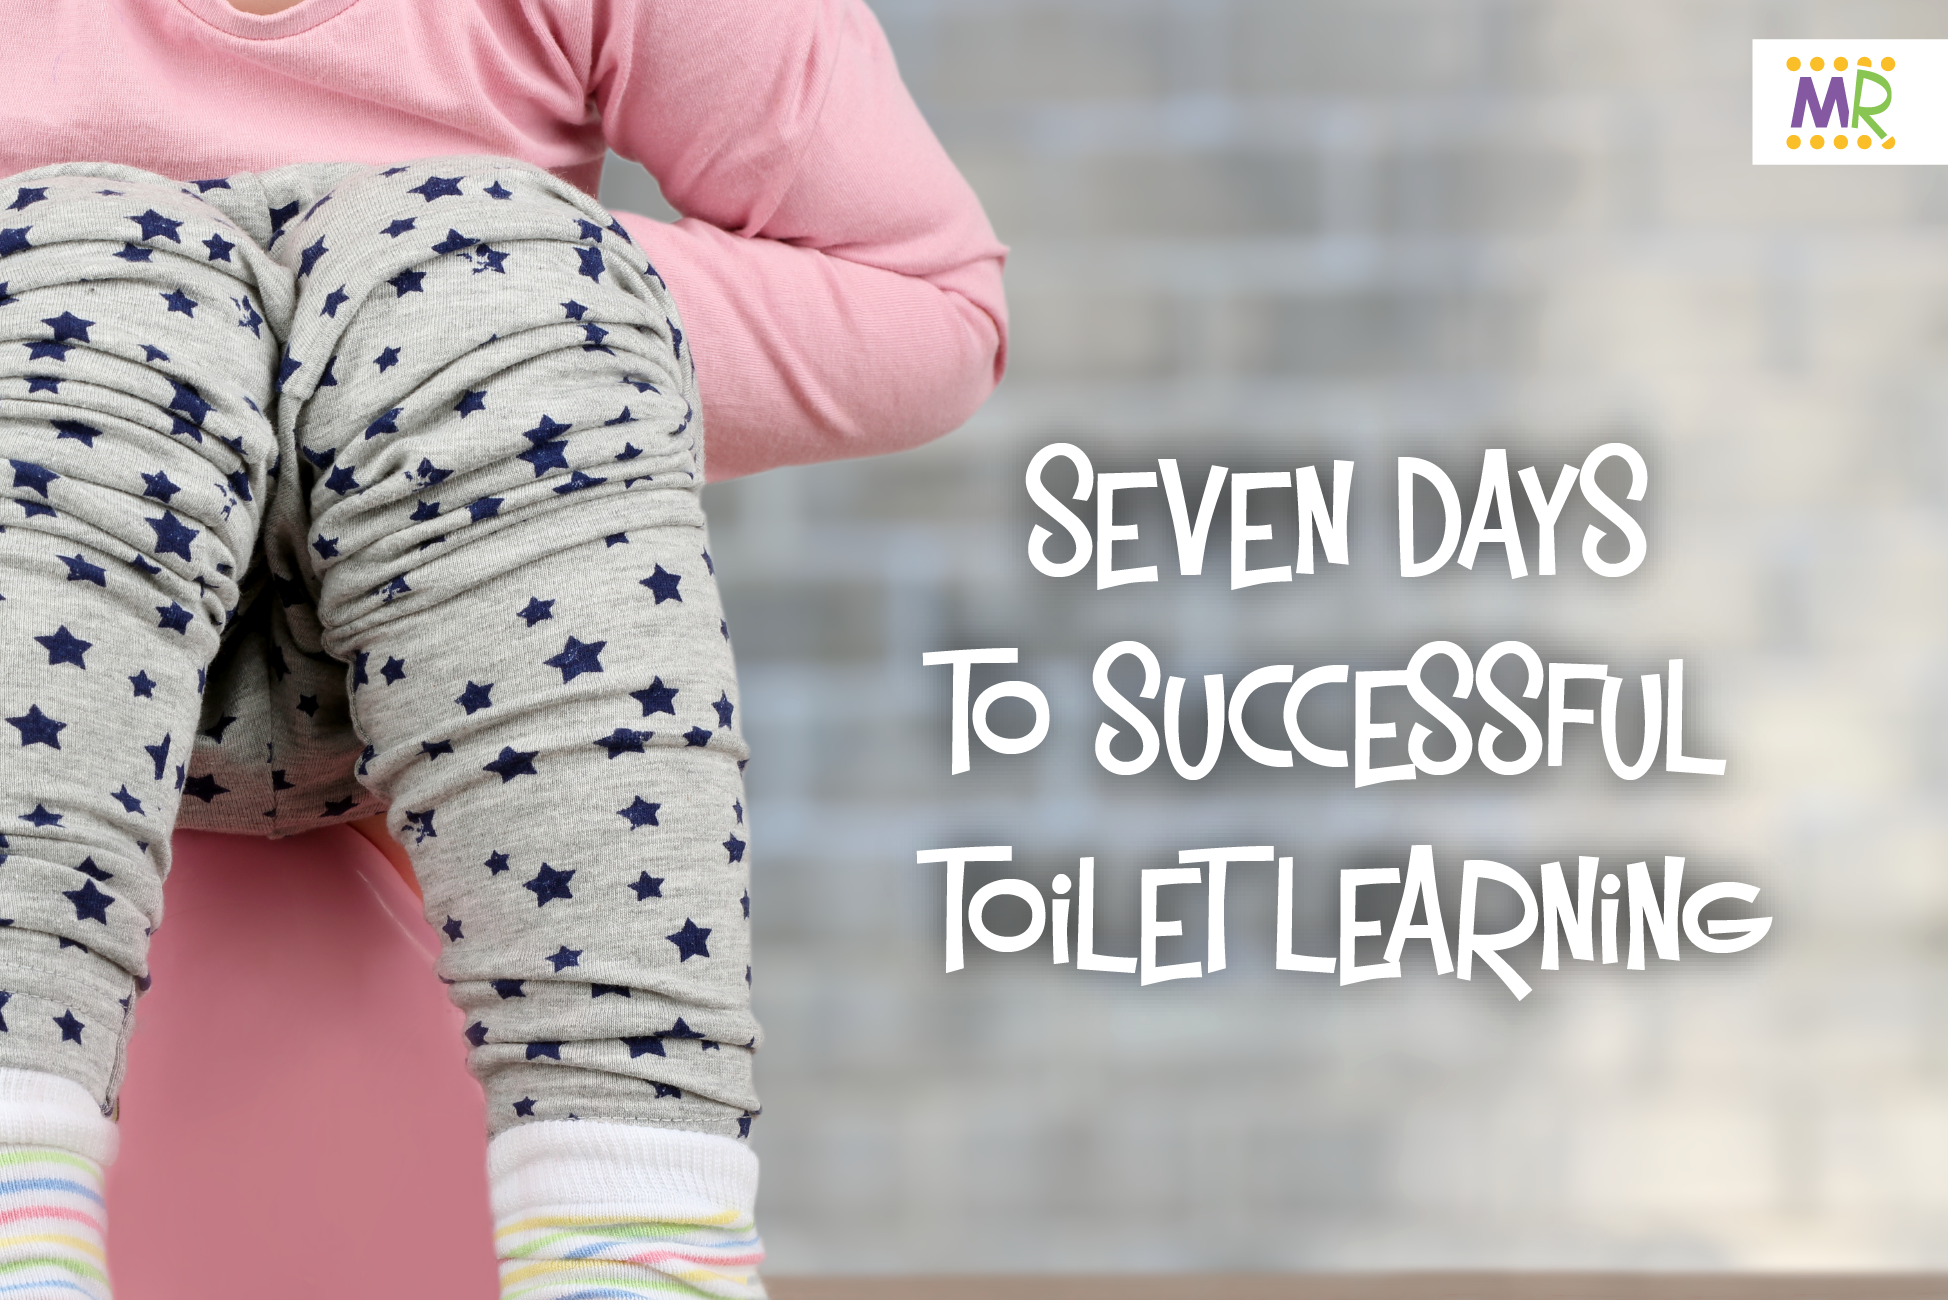 Seven Days to Successful Toilet Learning